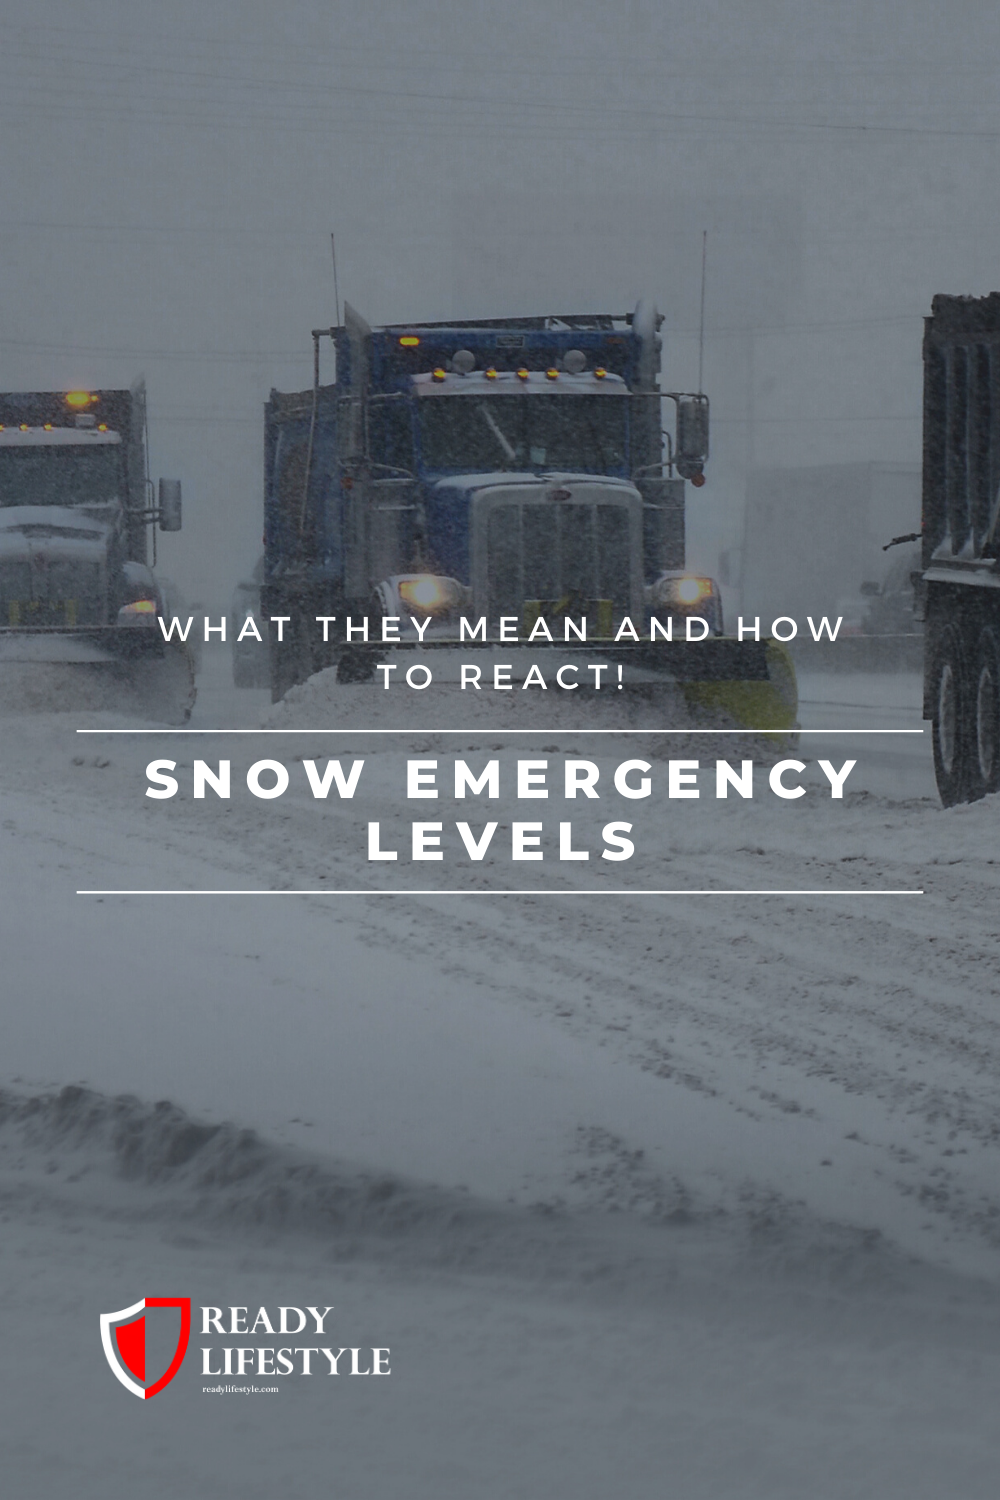 Ohio's Snow Emergency Levels What They Mean and How to